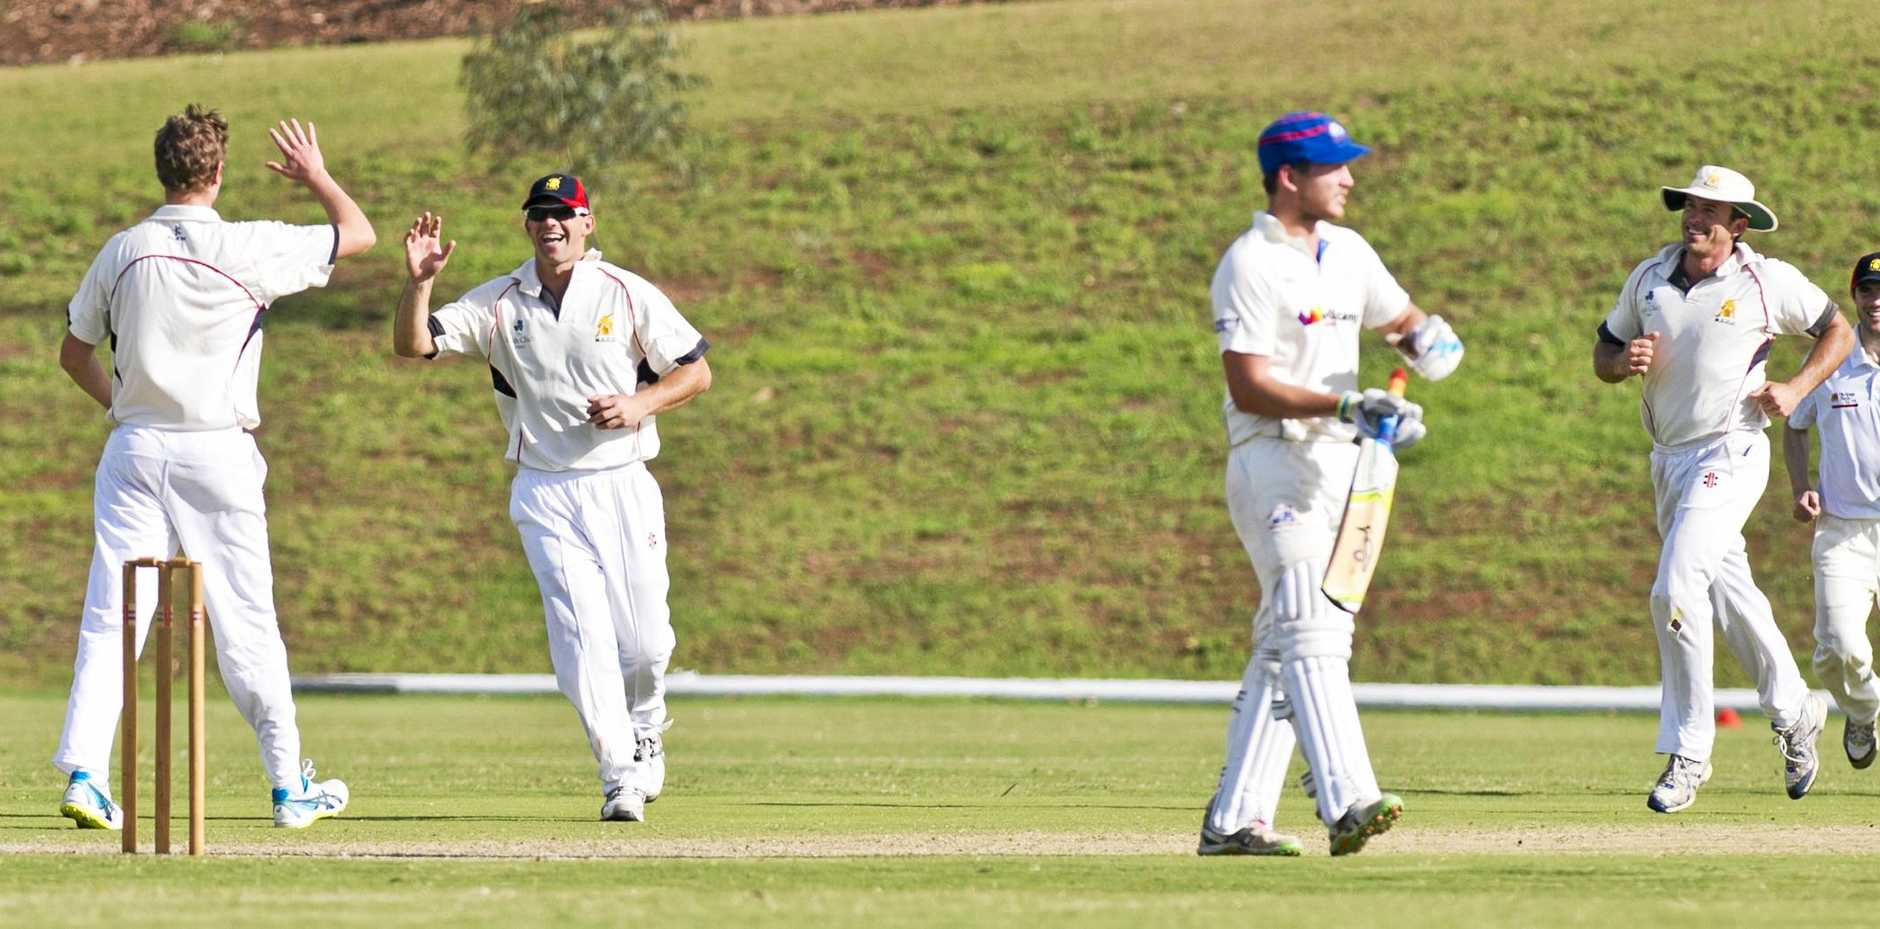 Metropolitan-Easts co-captain Peter Reimers celebrates catching out Highfields Railways' Simon Schmotz during their Harding-Madsen Shield match at the weekend.